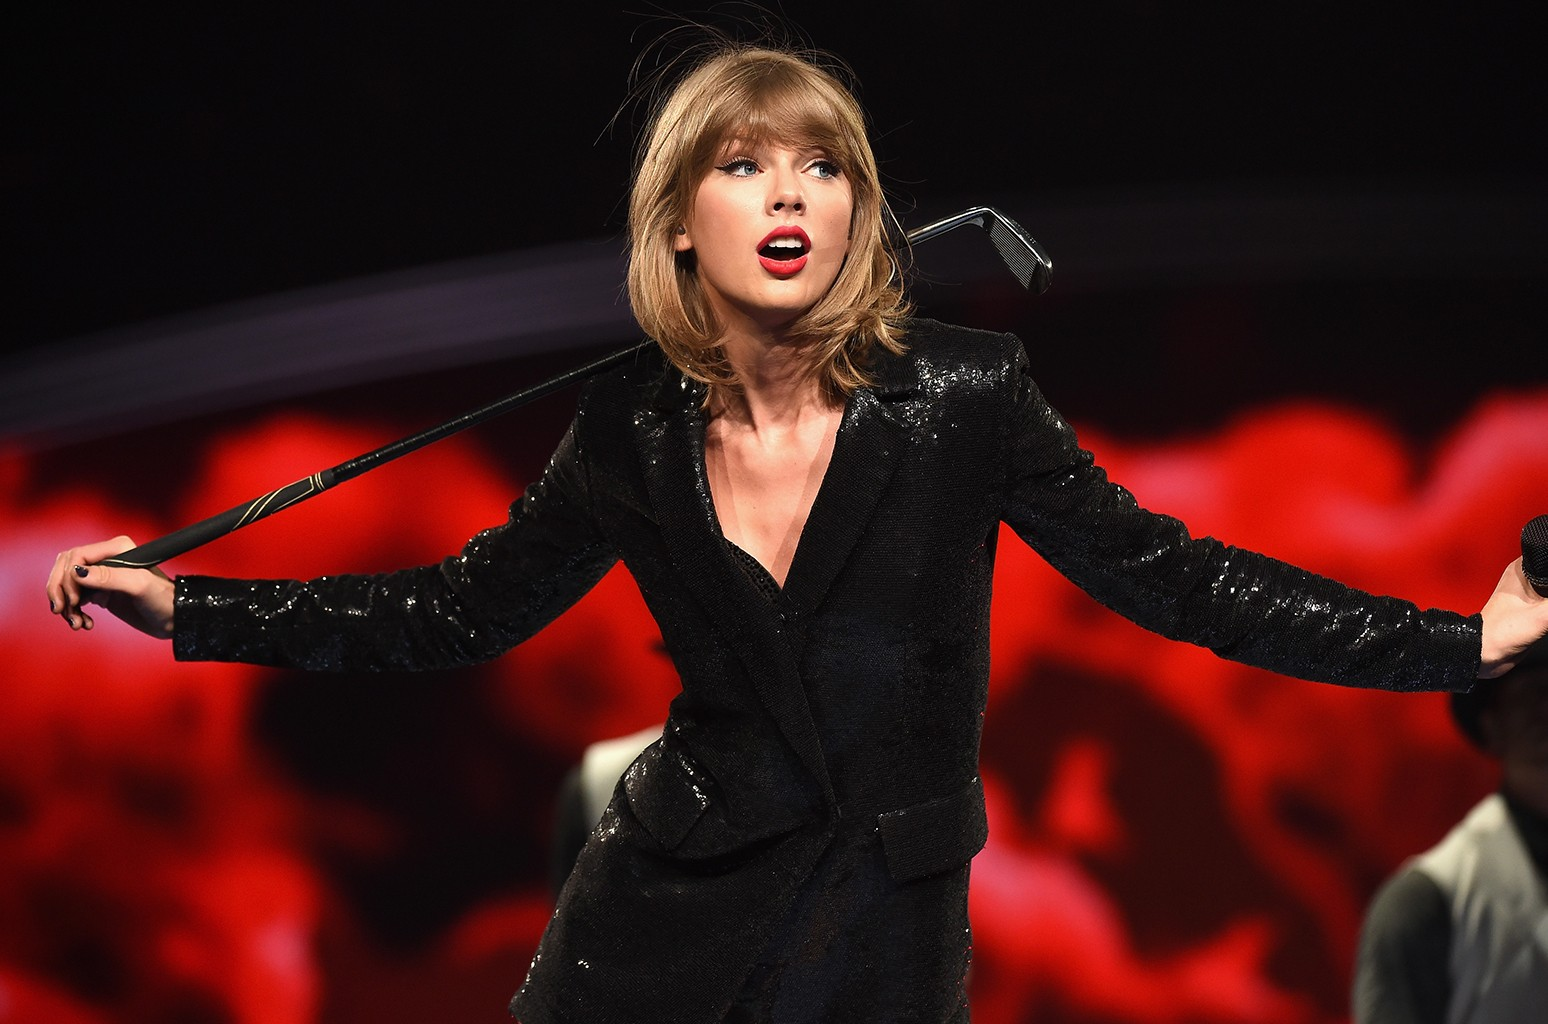 Taylor Swift performs during The 1989 World Tour